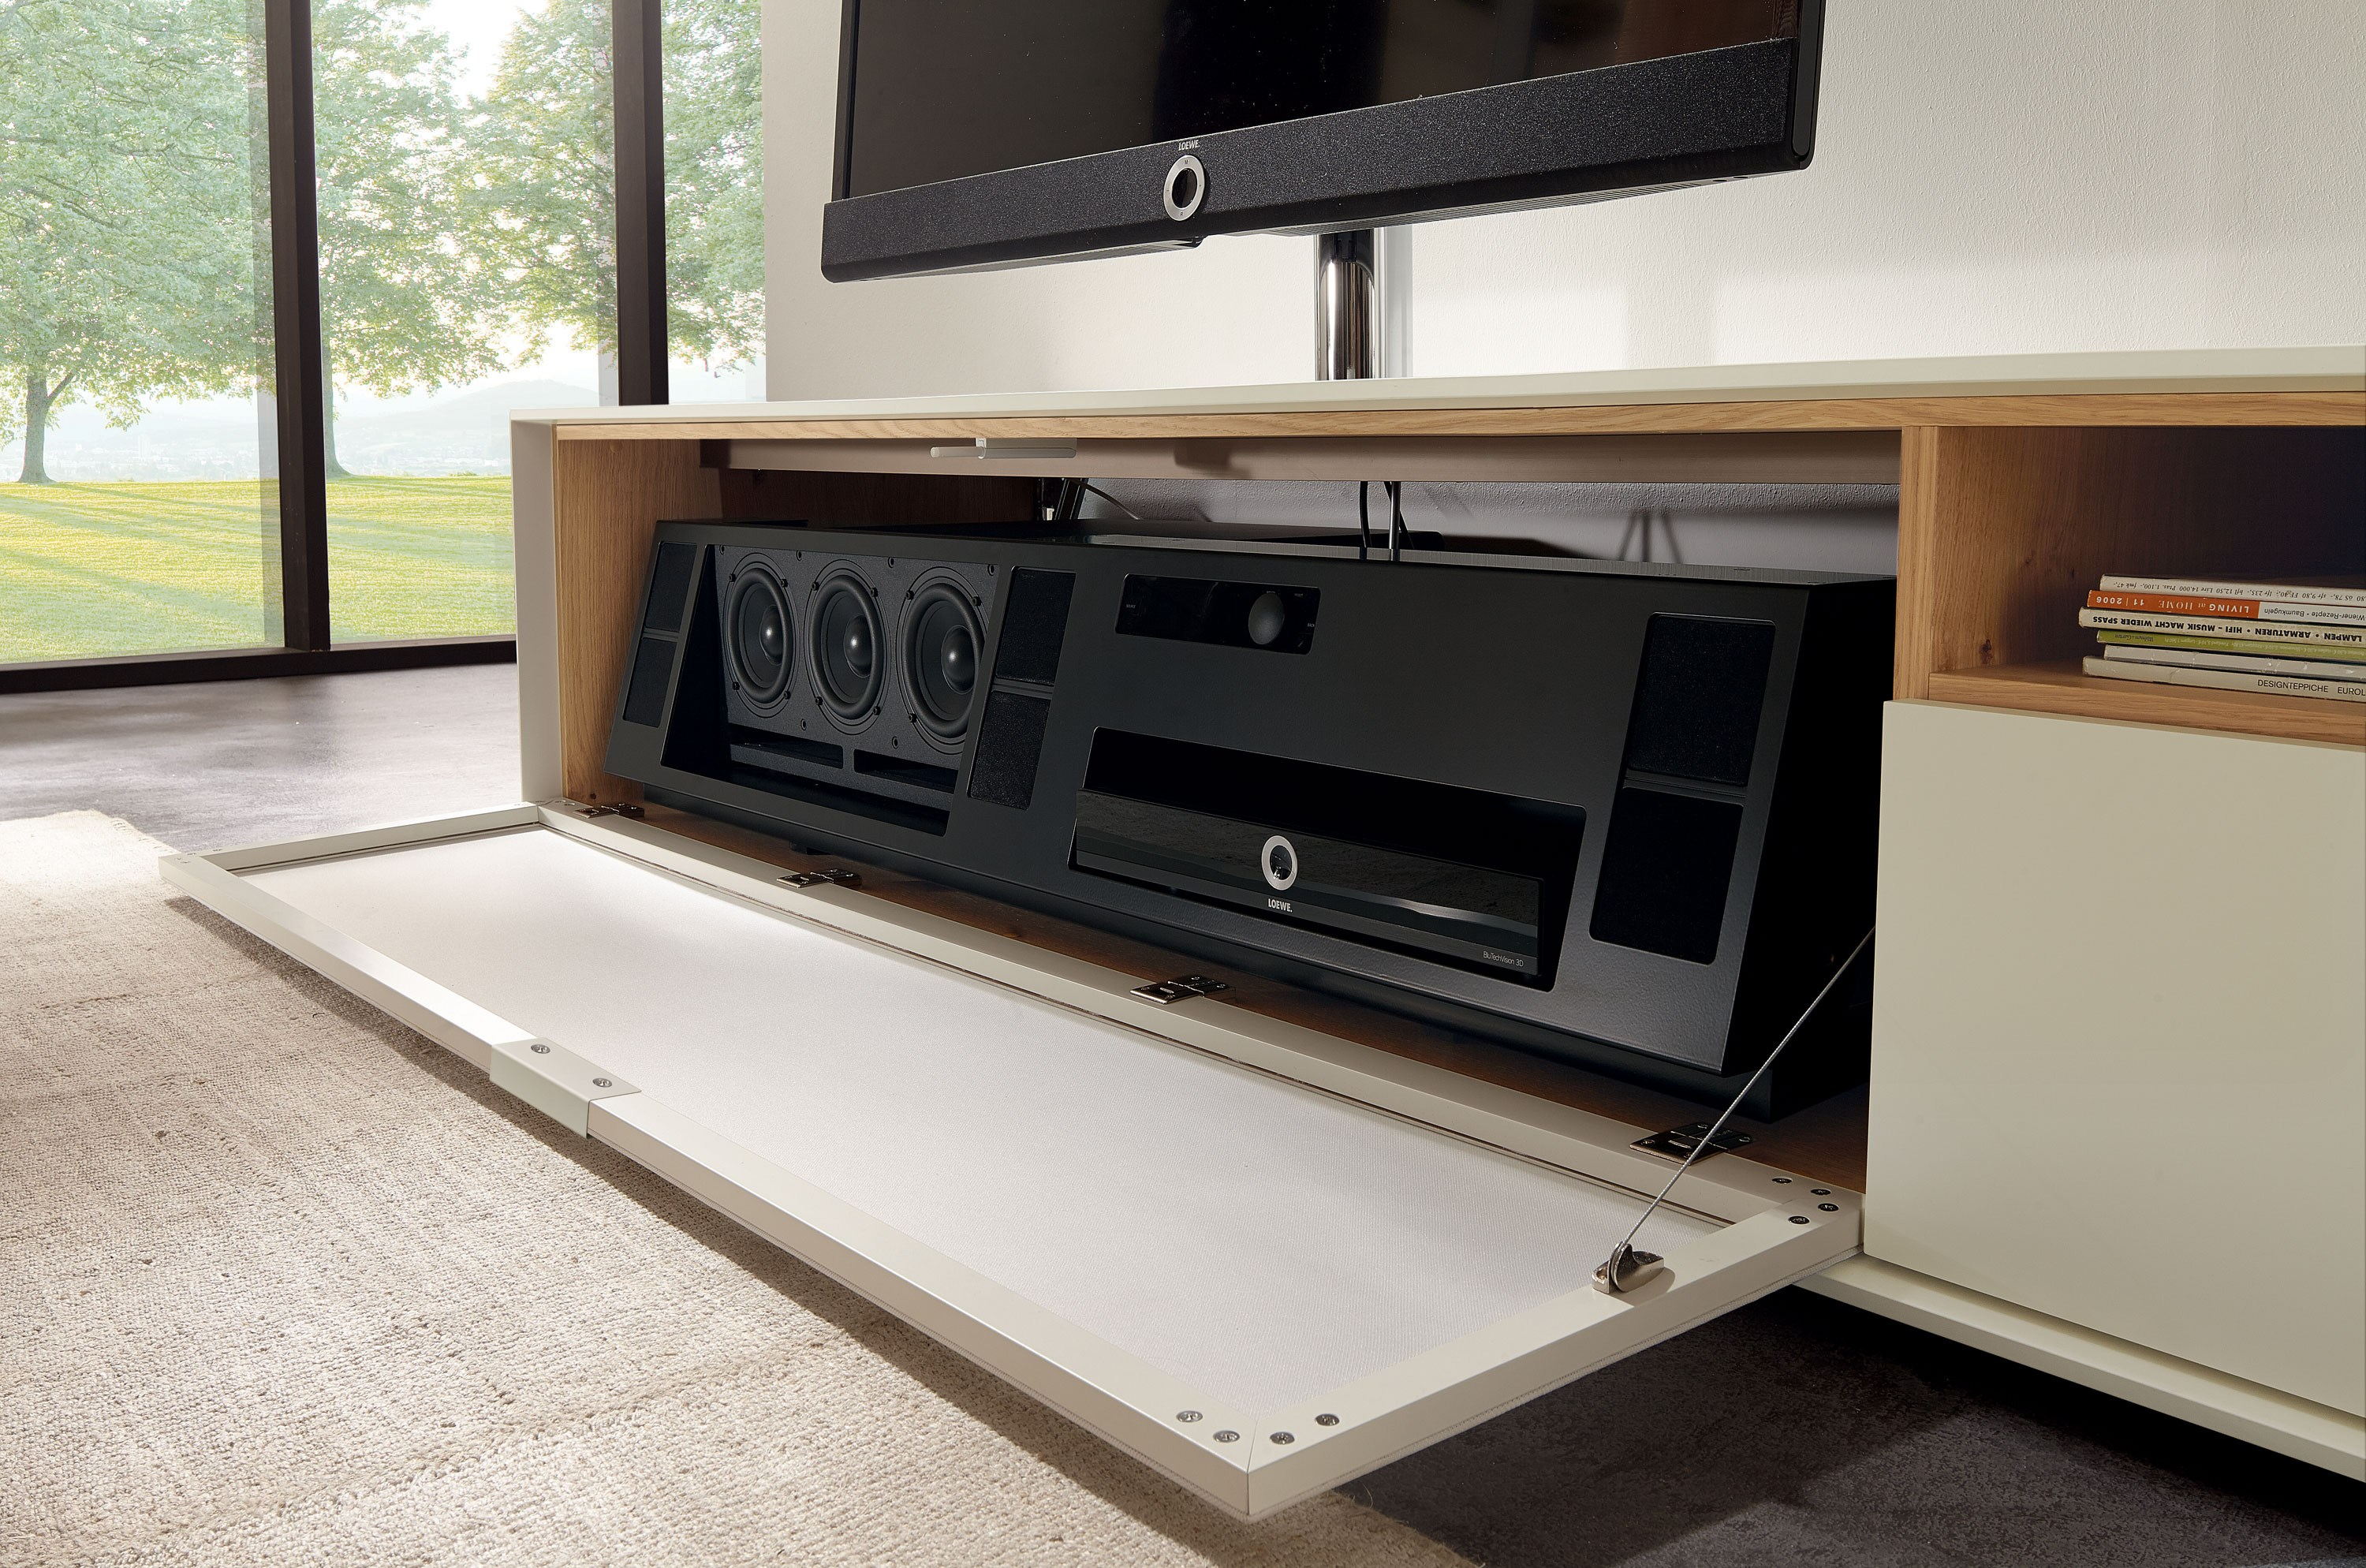 Country dining room furniture - Low Lacquered Tv Cabinet Scopia Tv Cabinet H 252 Lsta Werke H 252 Ls